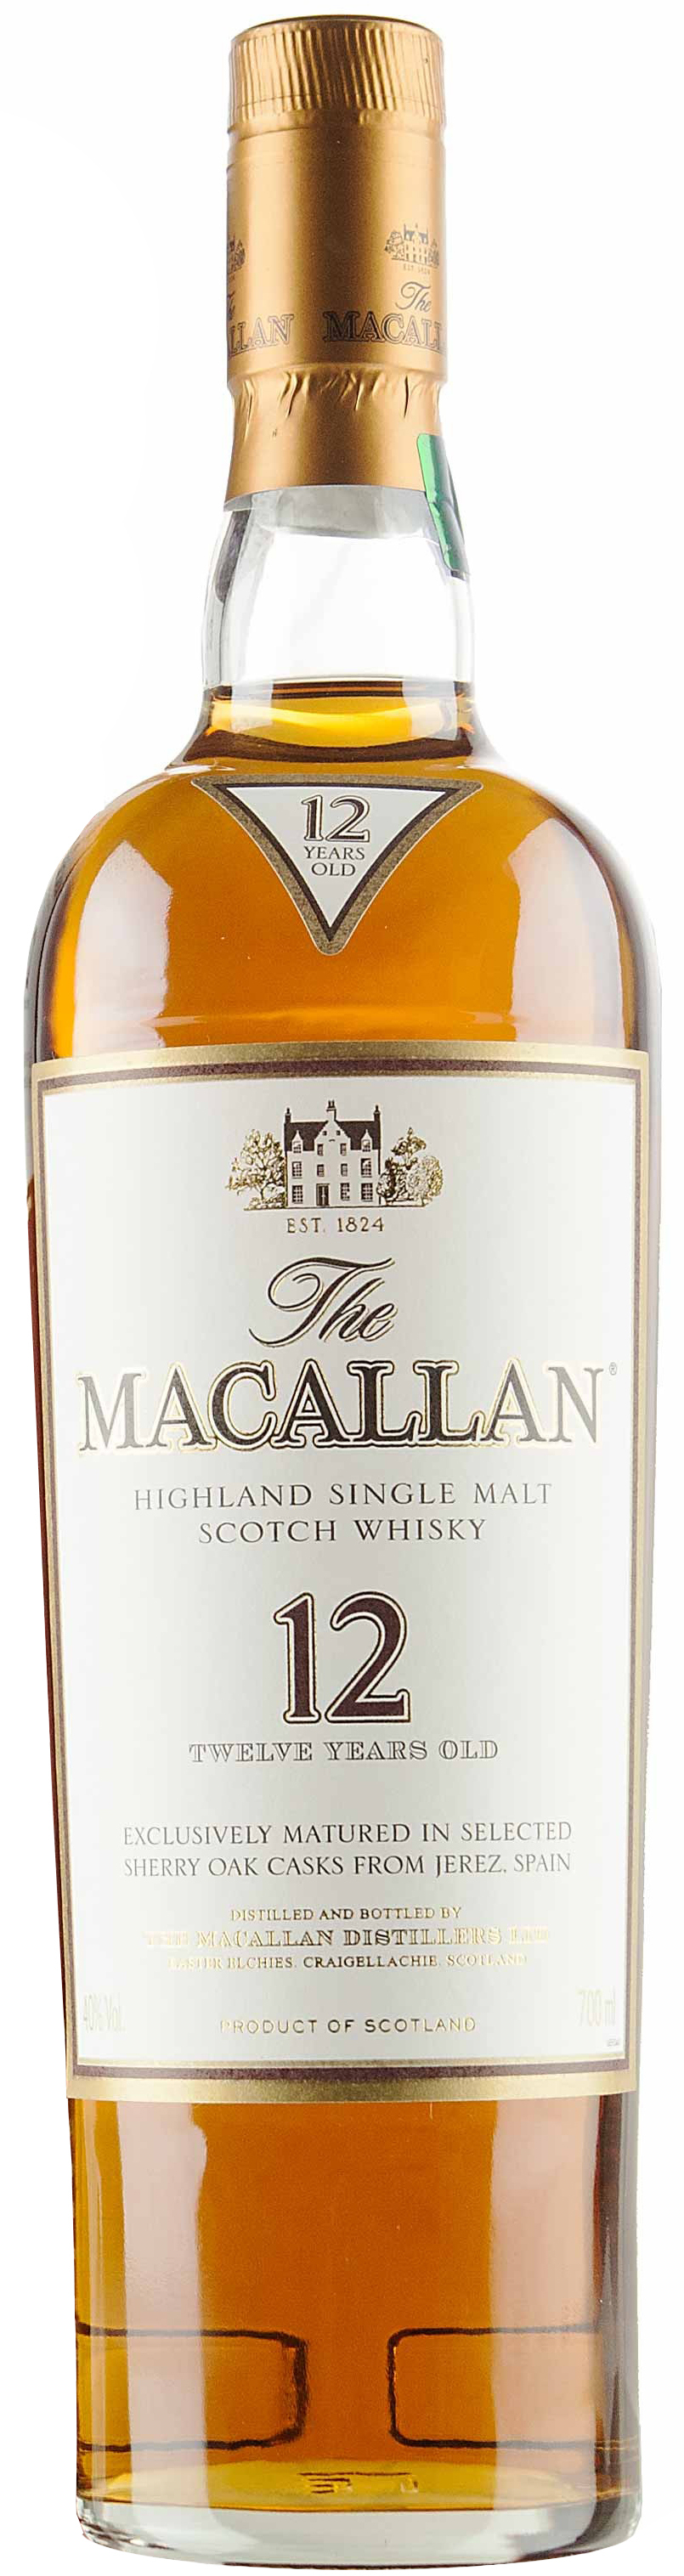 Macallan Single Malt Scotch Whisky 12 year old